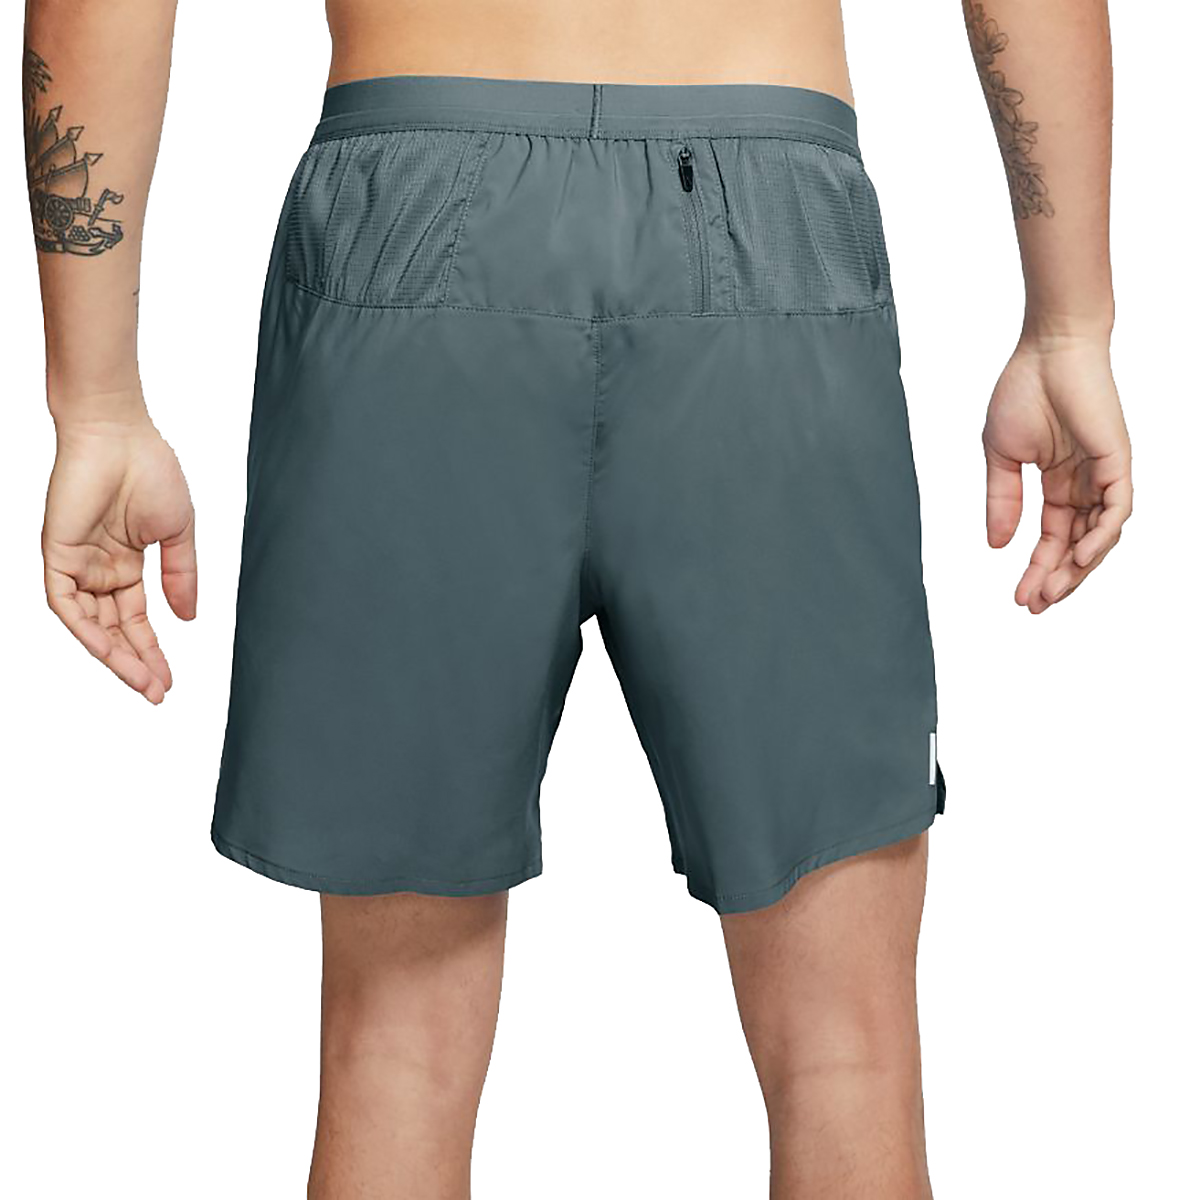 """Men's Nike Flex Stride 7"""" Brief Running Shorts - Color: Hasta/Reflective Silver - Size: XS, Hasta/Reflective Silver, large, image 2"""